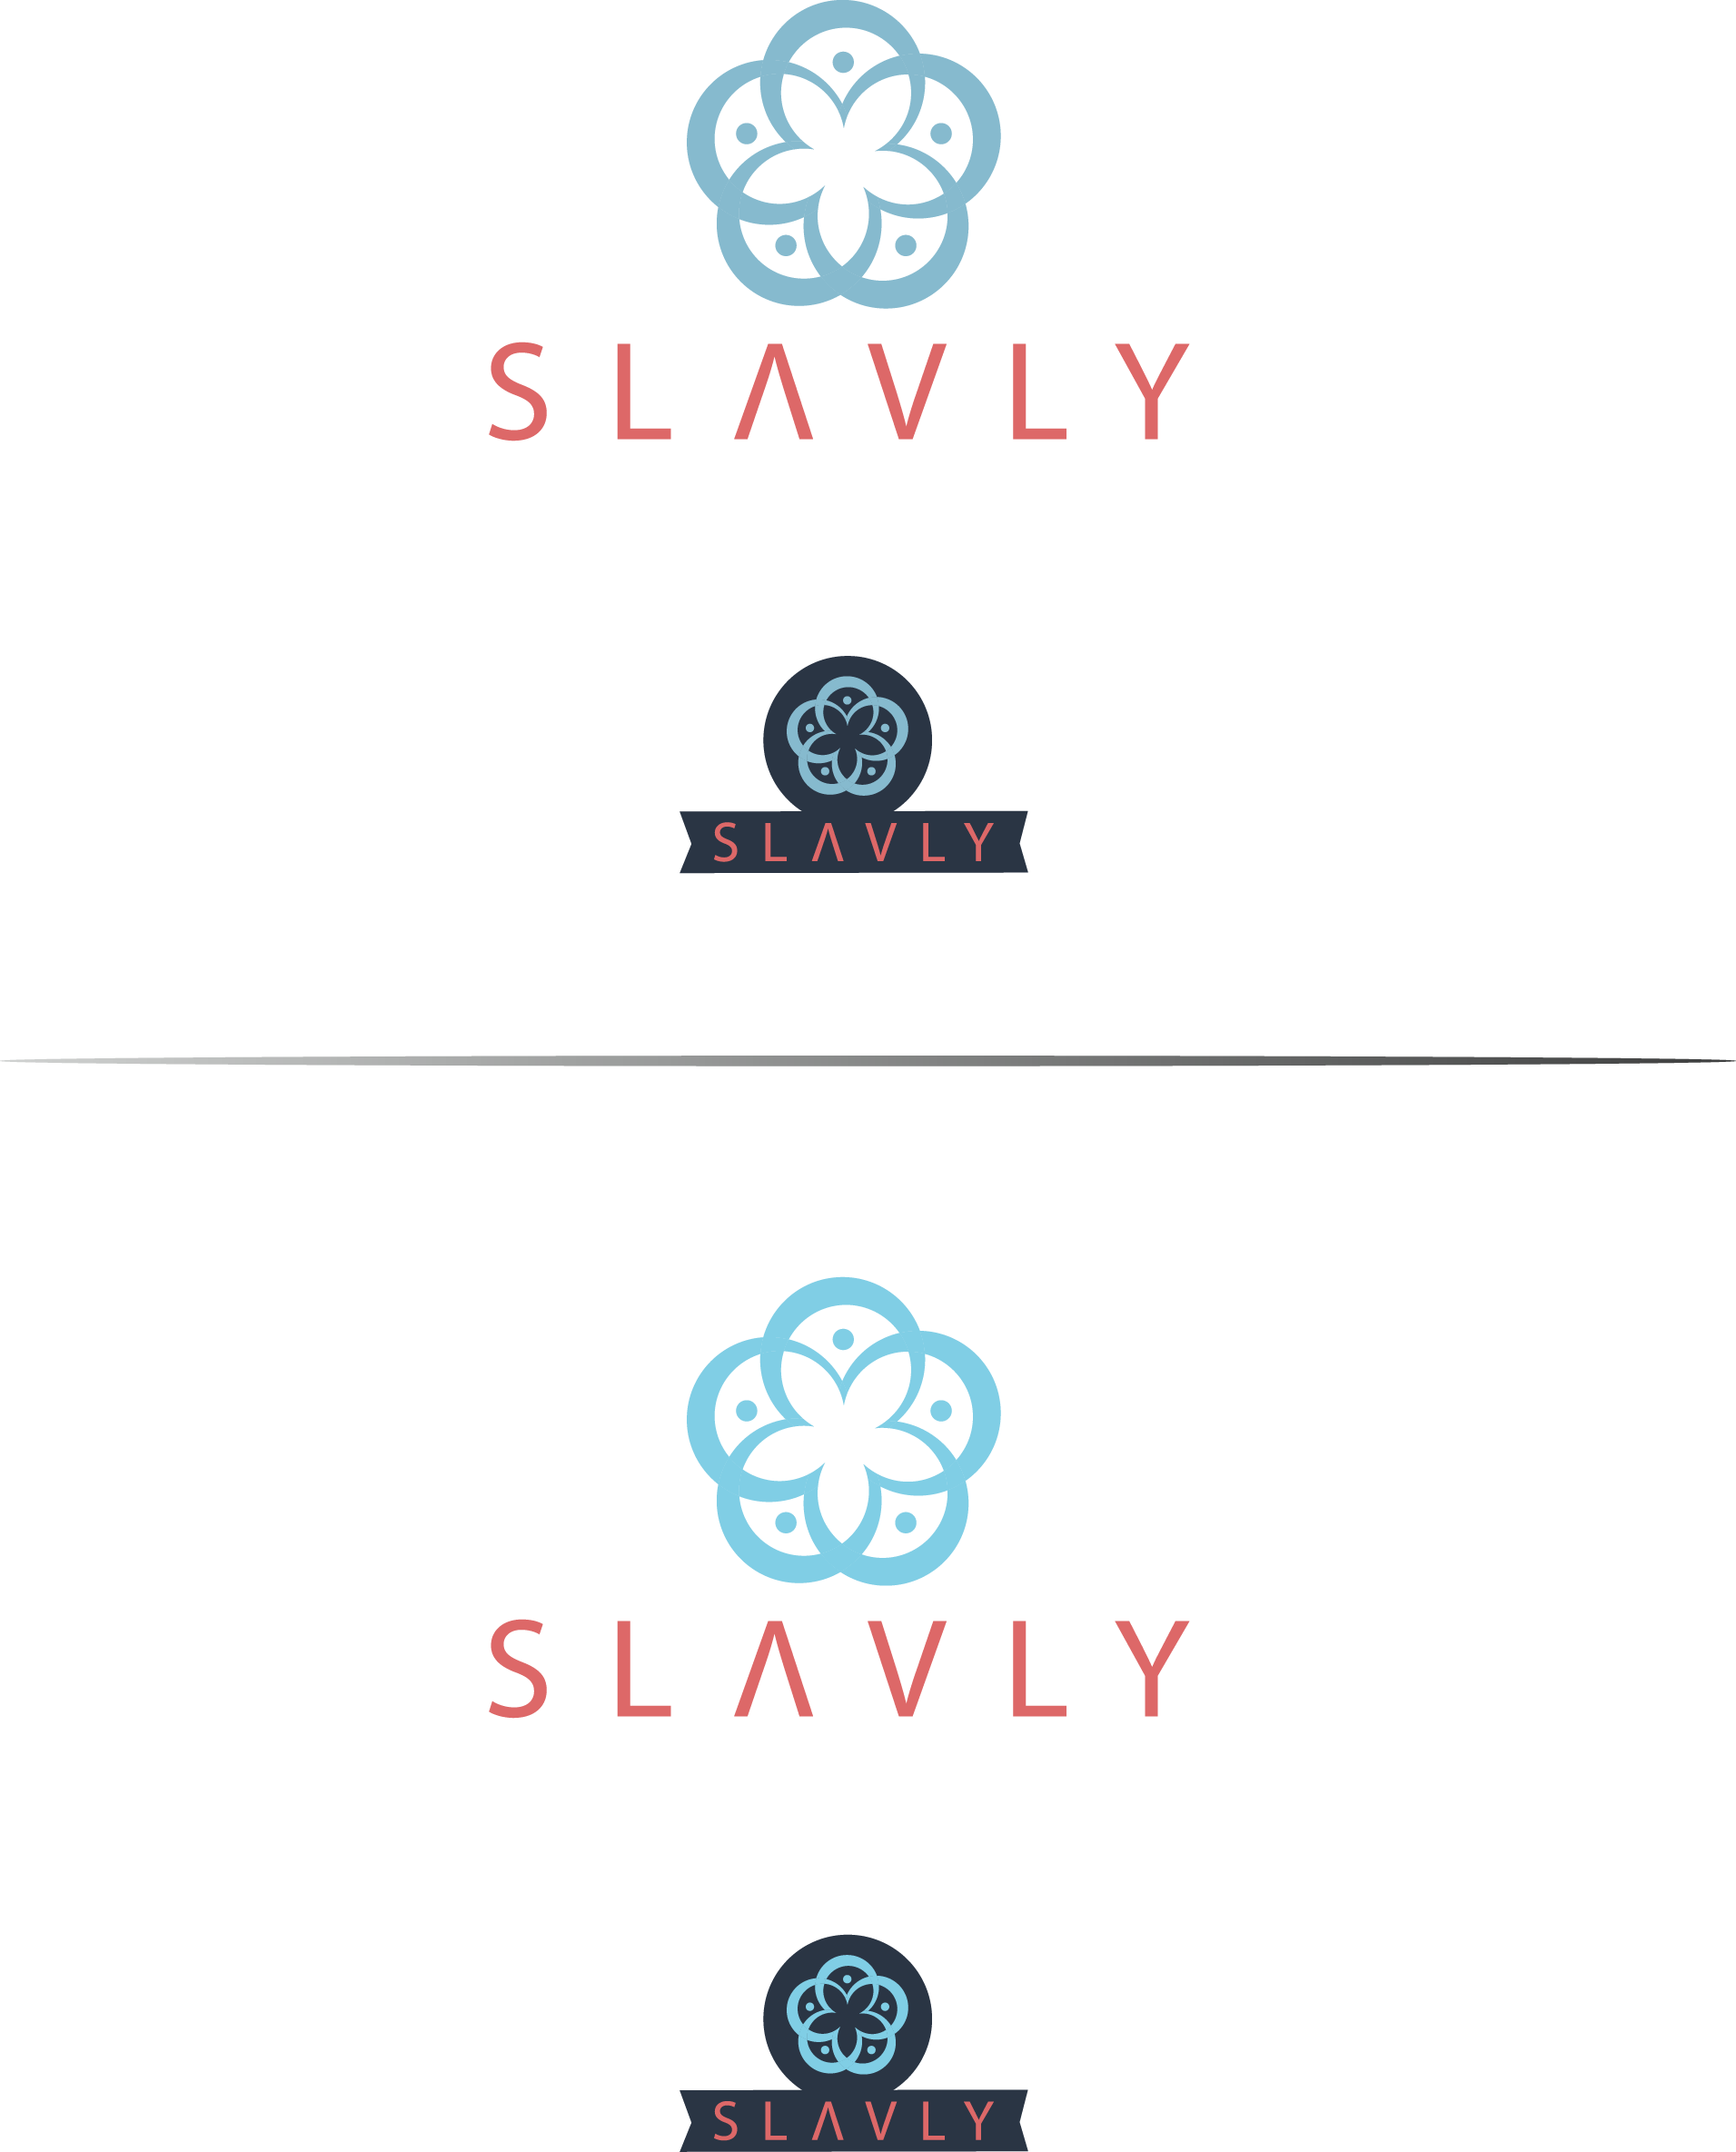 branding for slav.ly